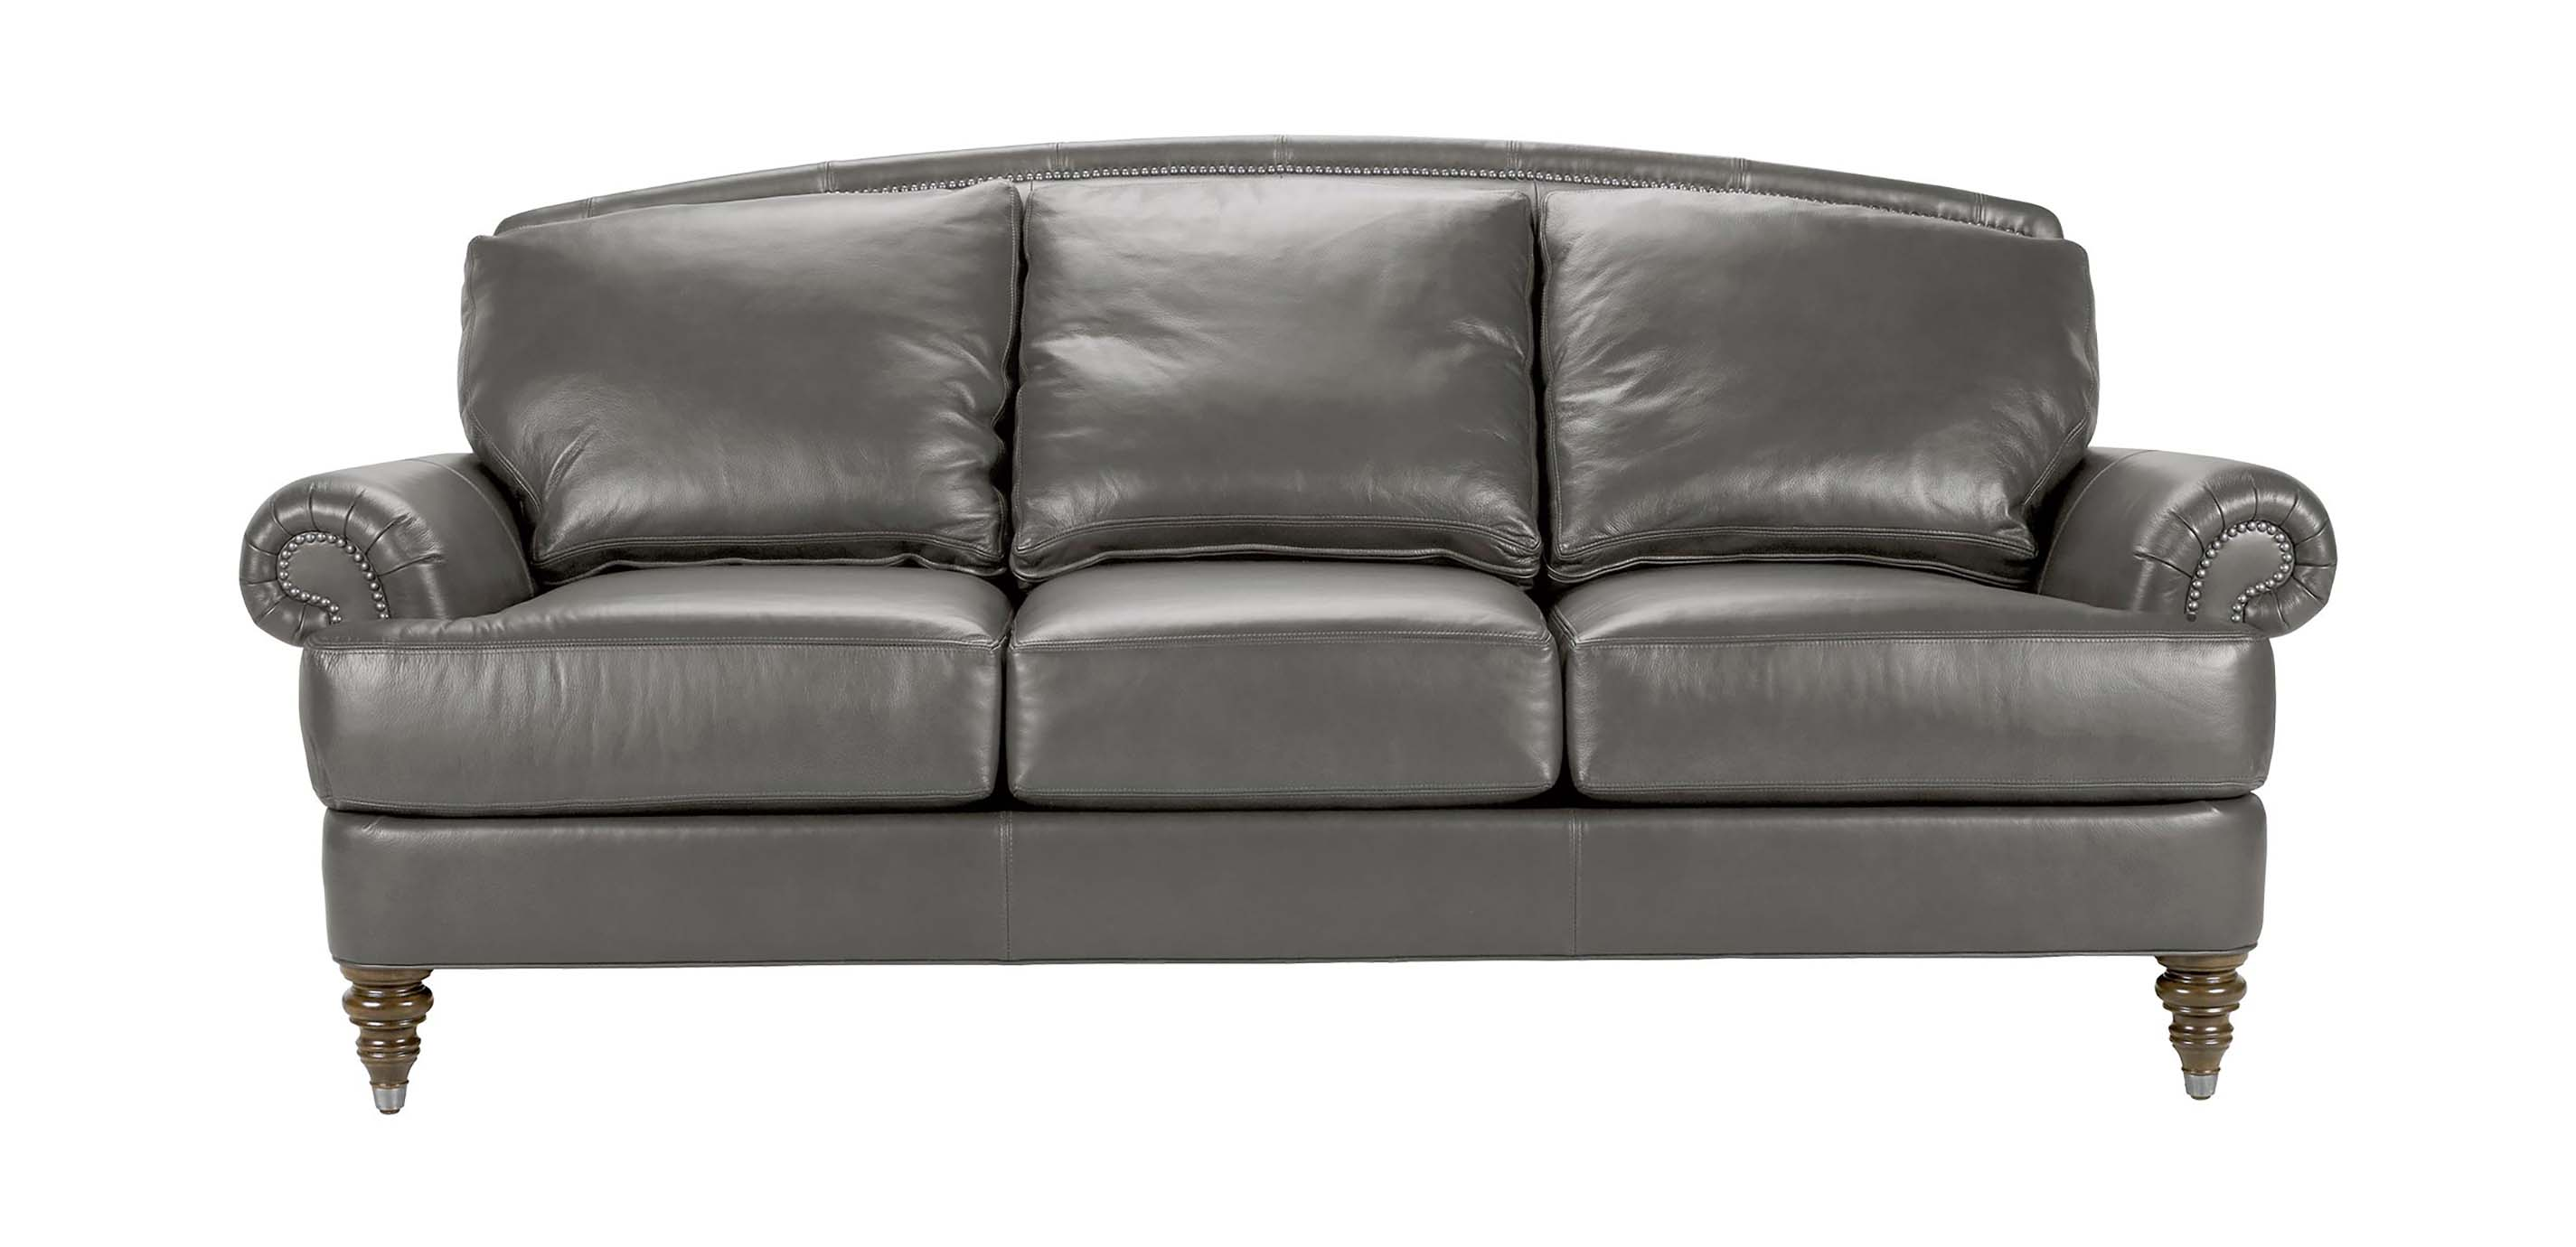 sofa douglas condofurniture hide a ideas bed condo by and sleeper new loveseat